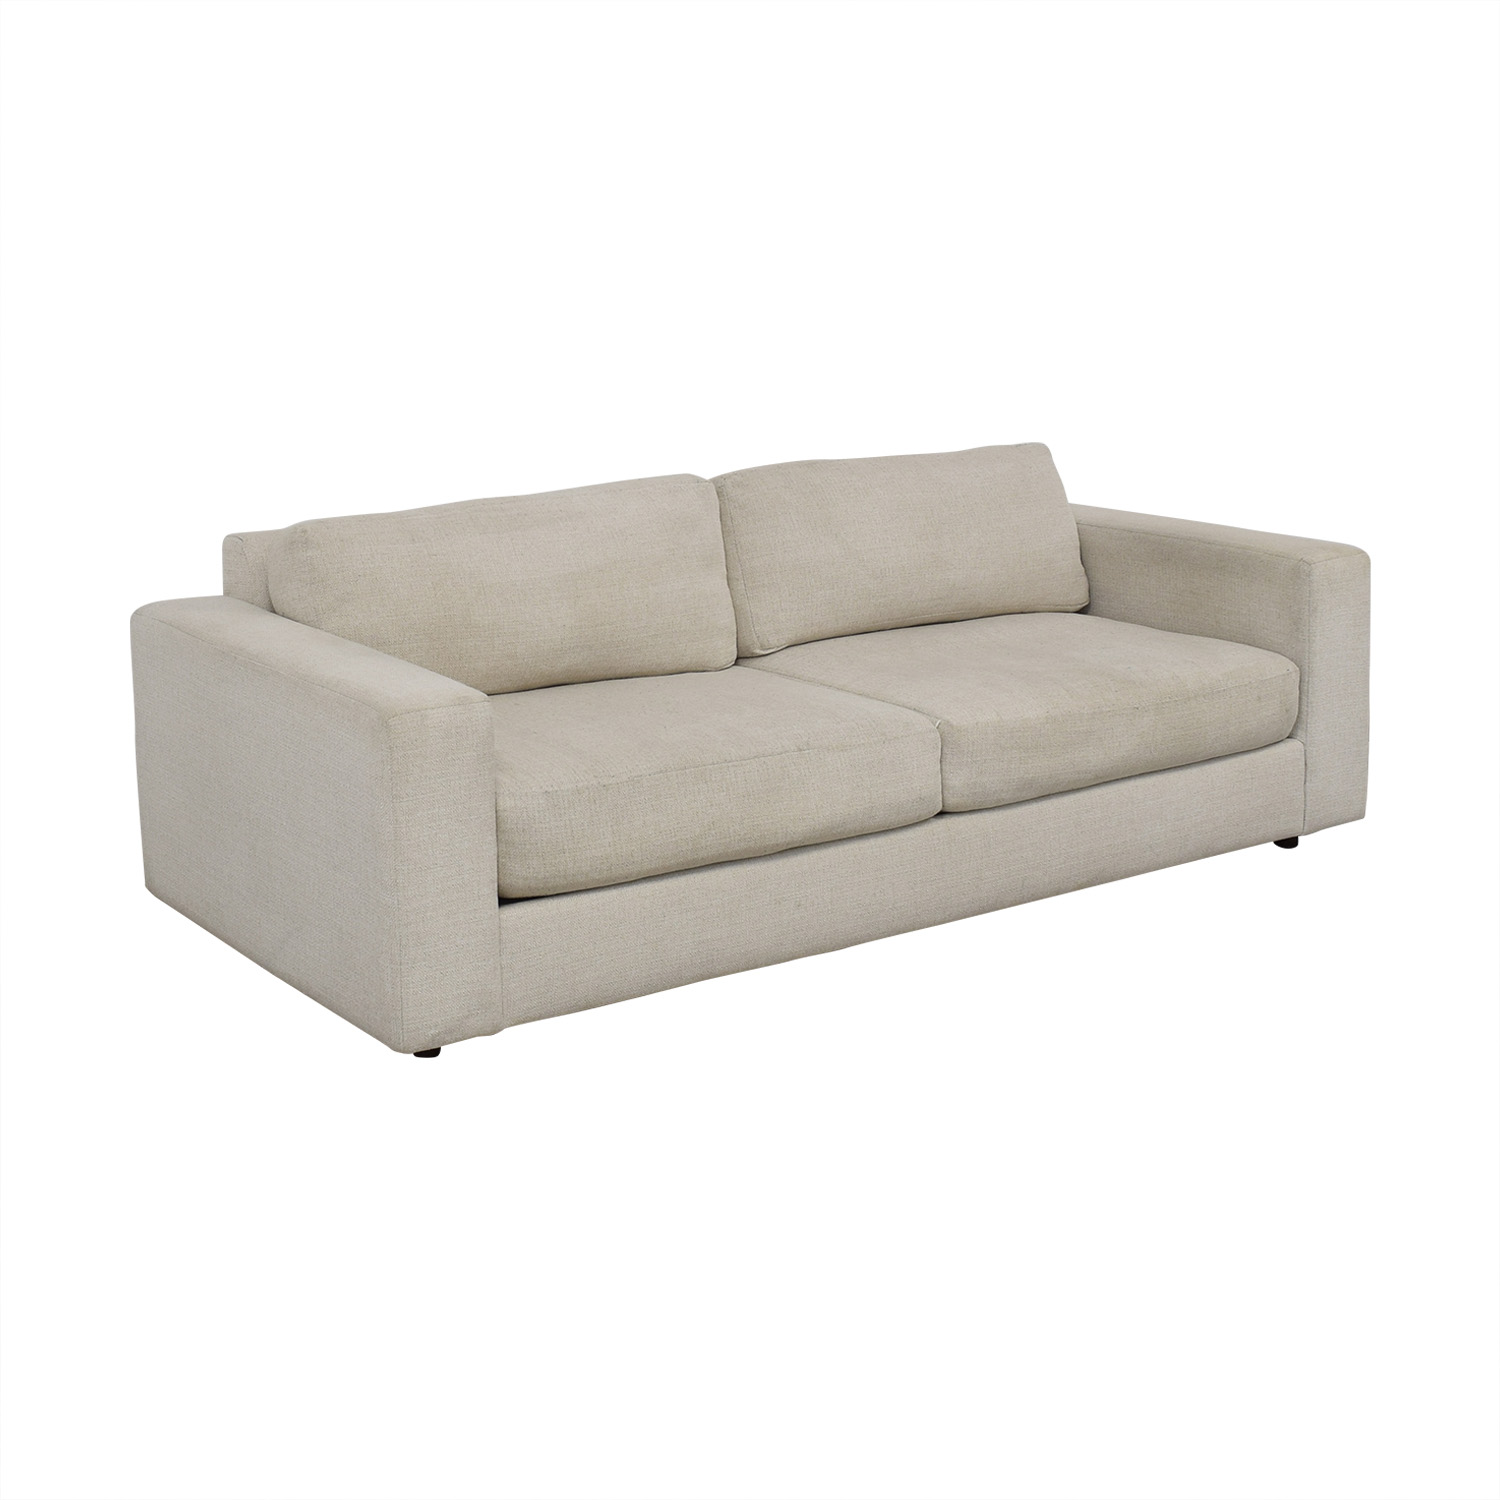 West Elm Urban Sofa sale